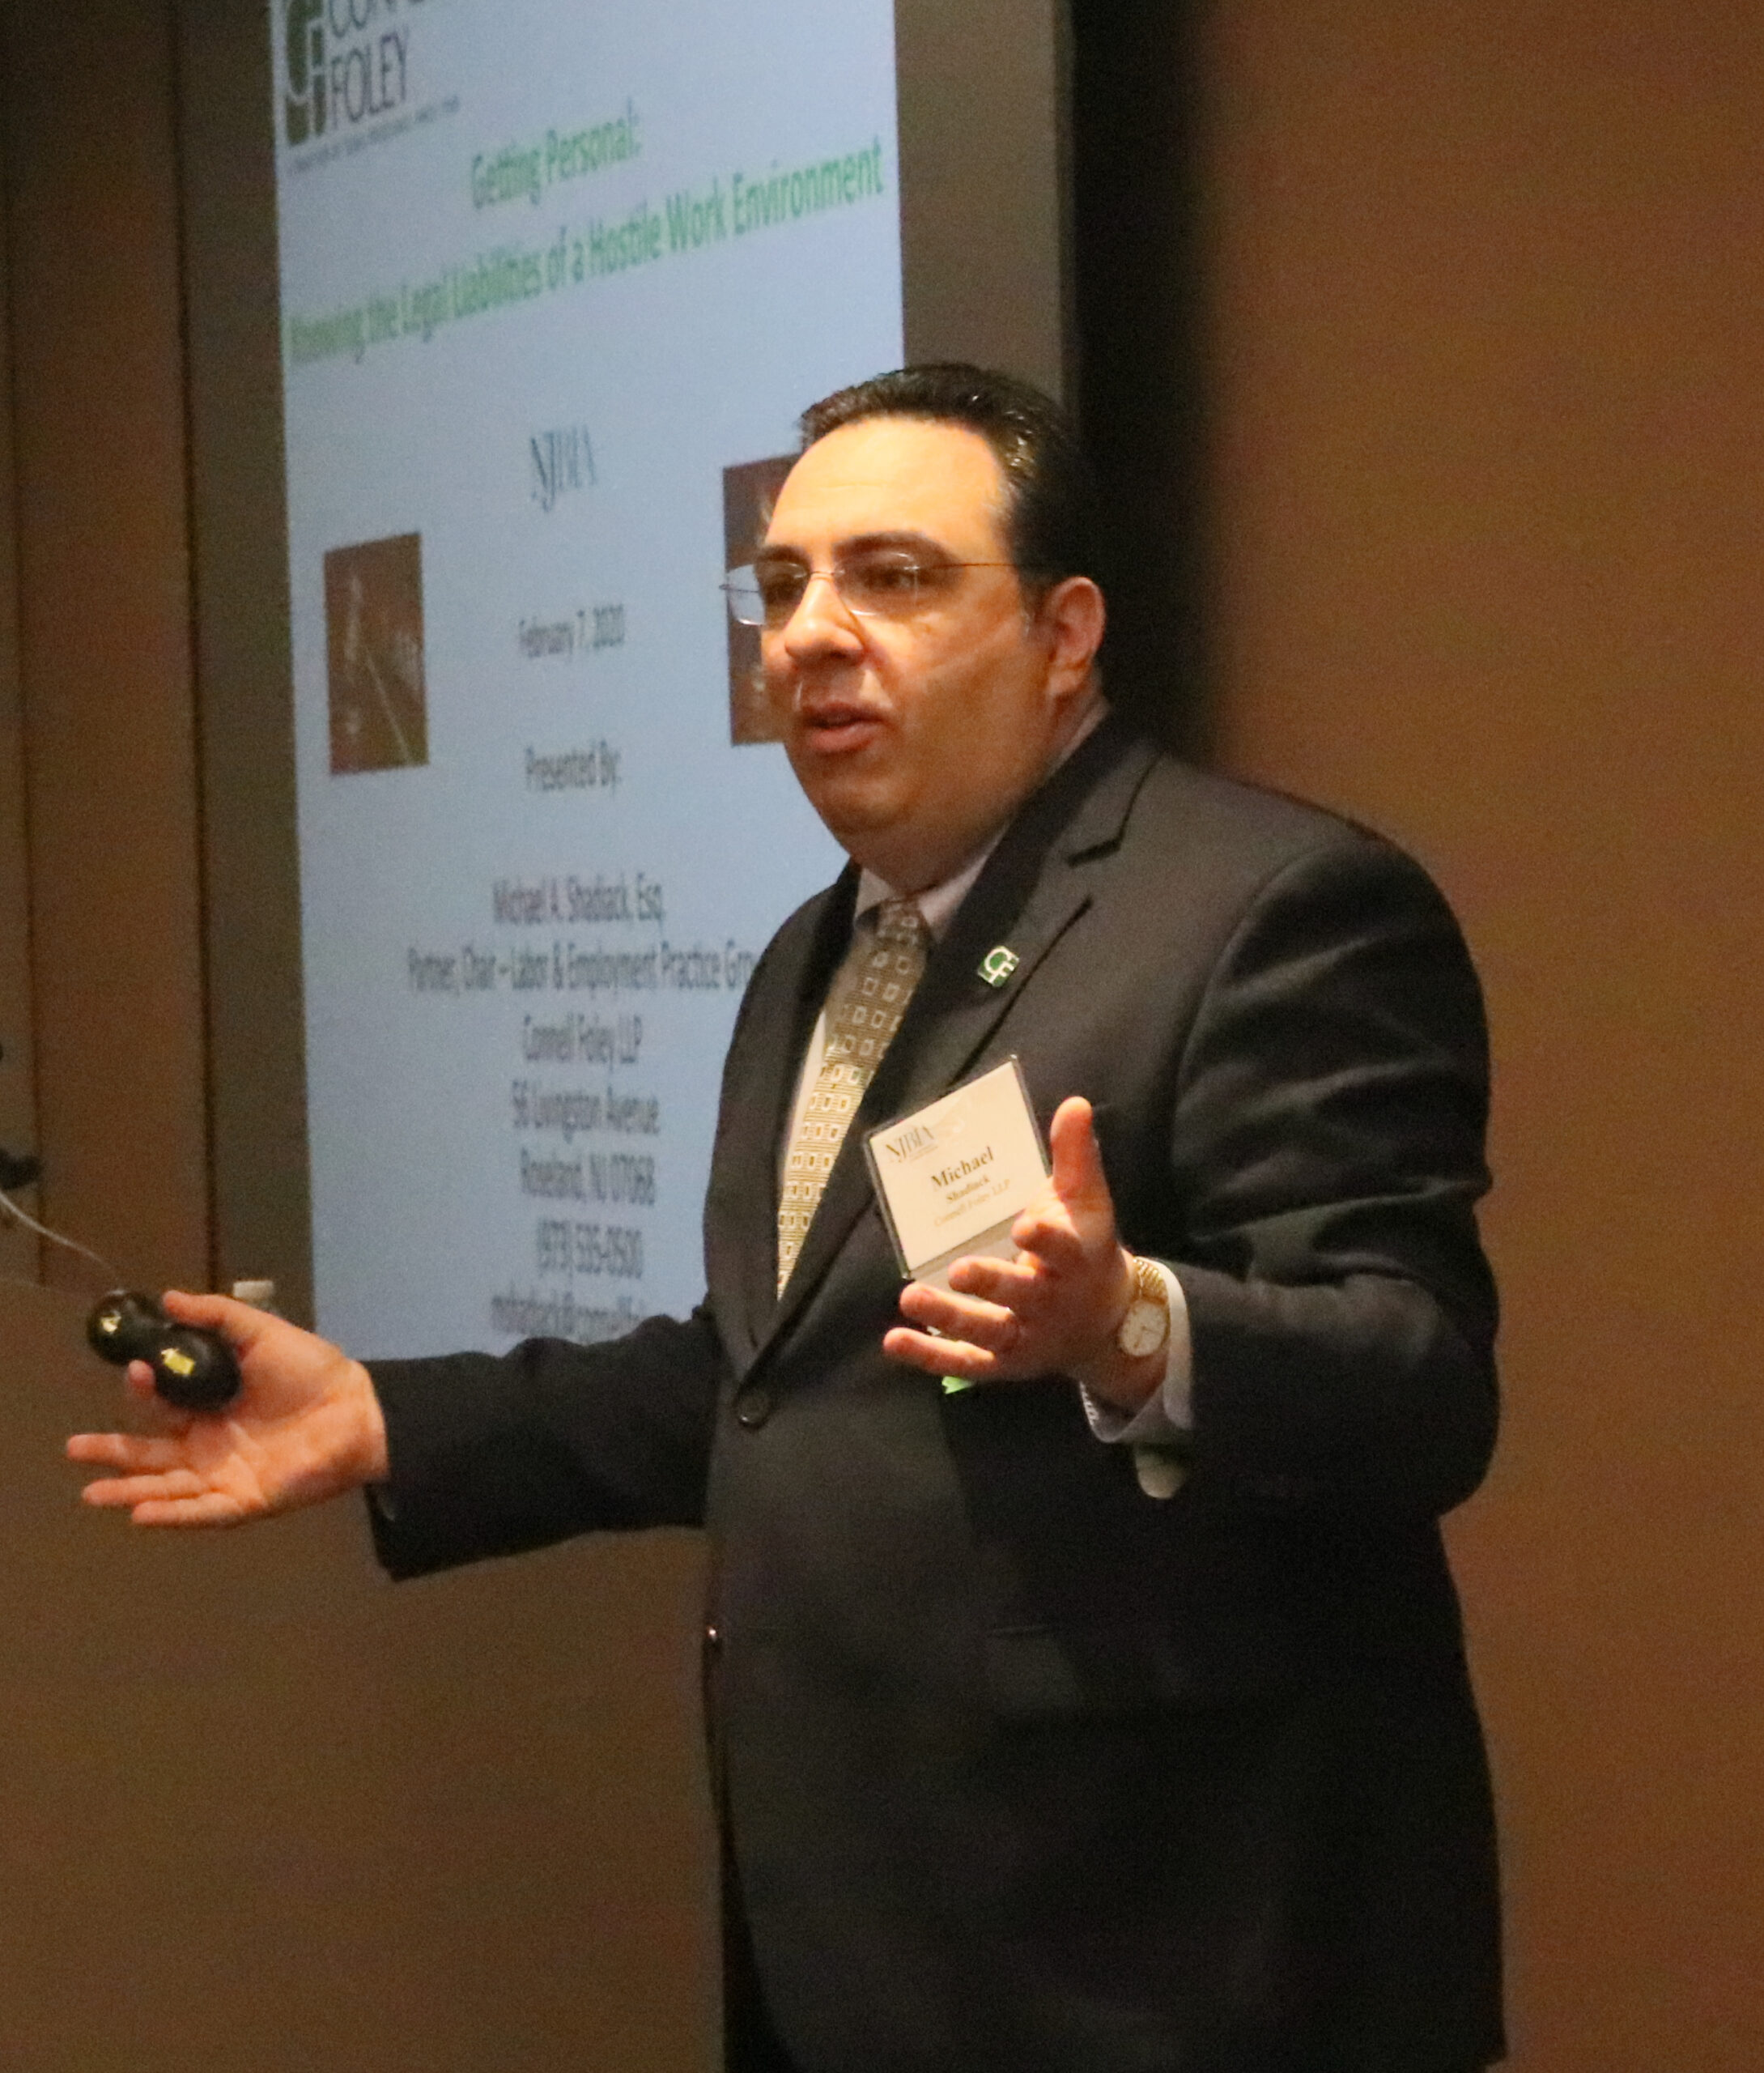 Attorney Michael Shadiack explaining policy pitfalls during a presentation on anti-harassment workplace policiesr.